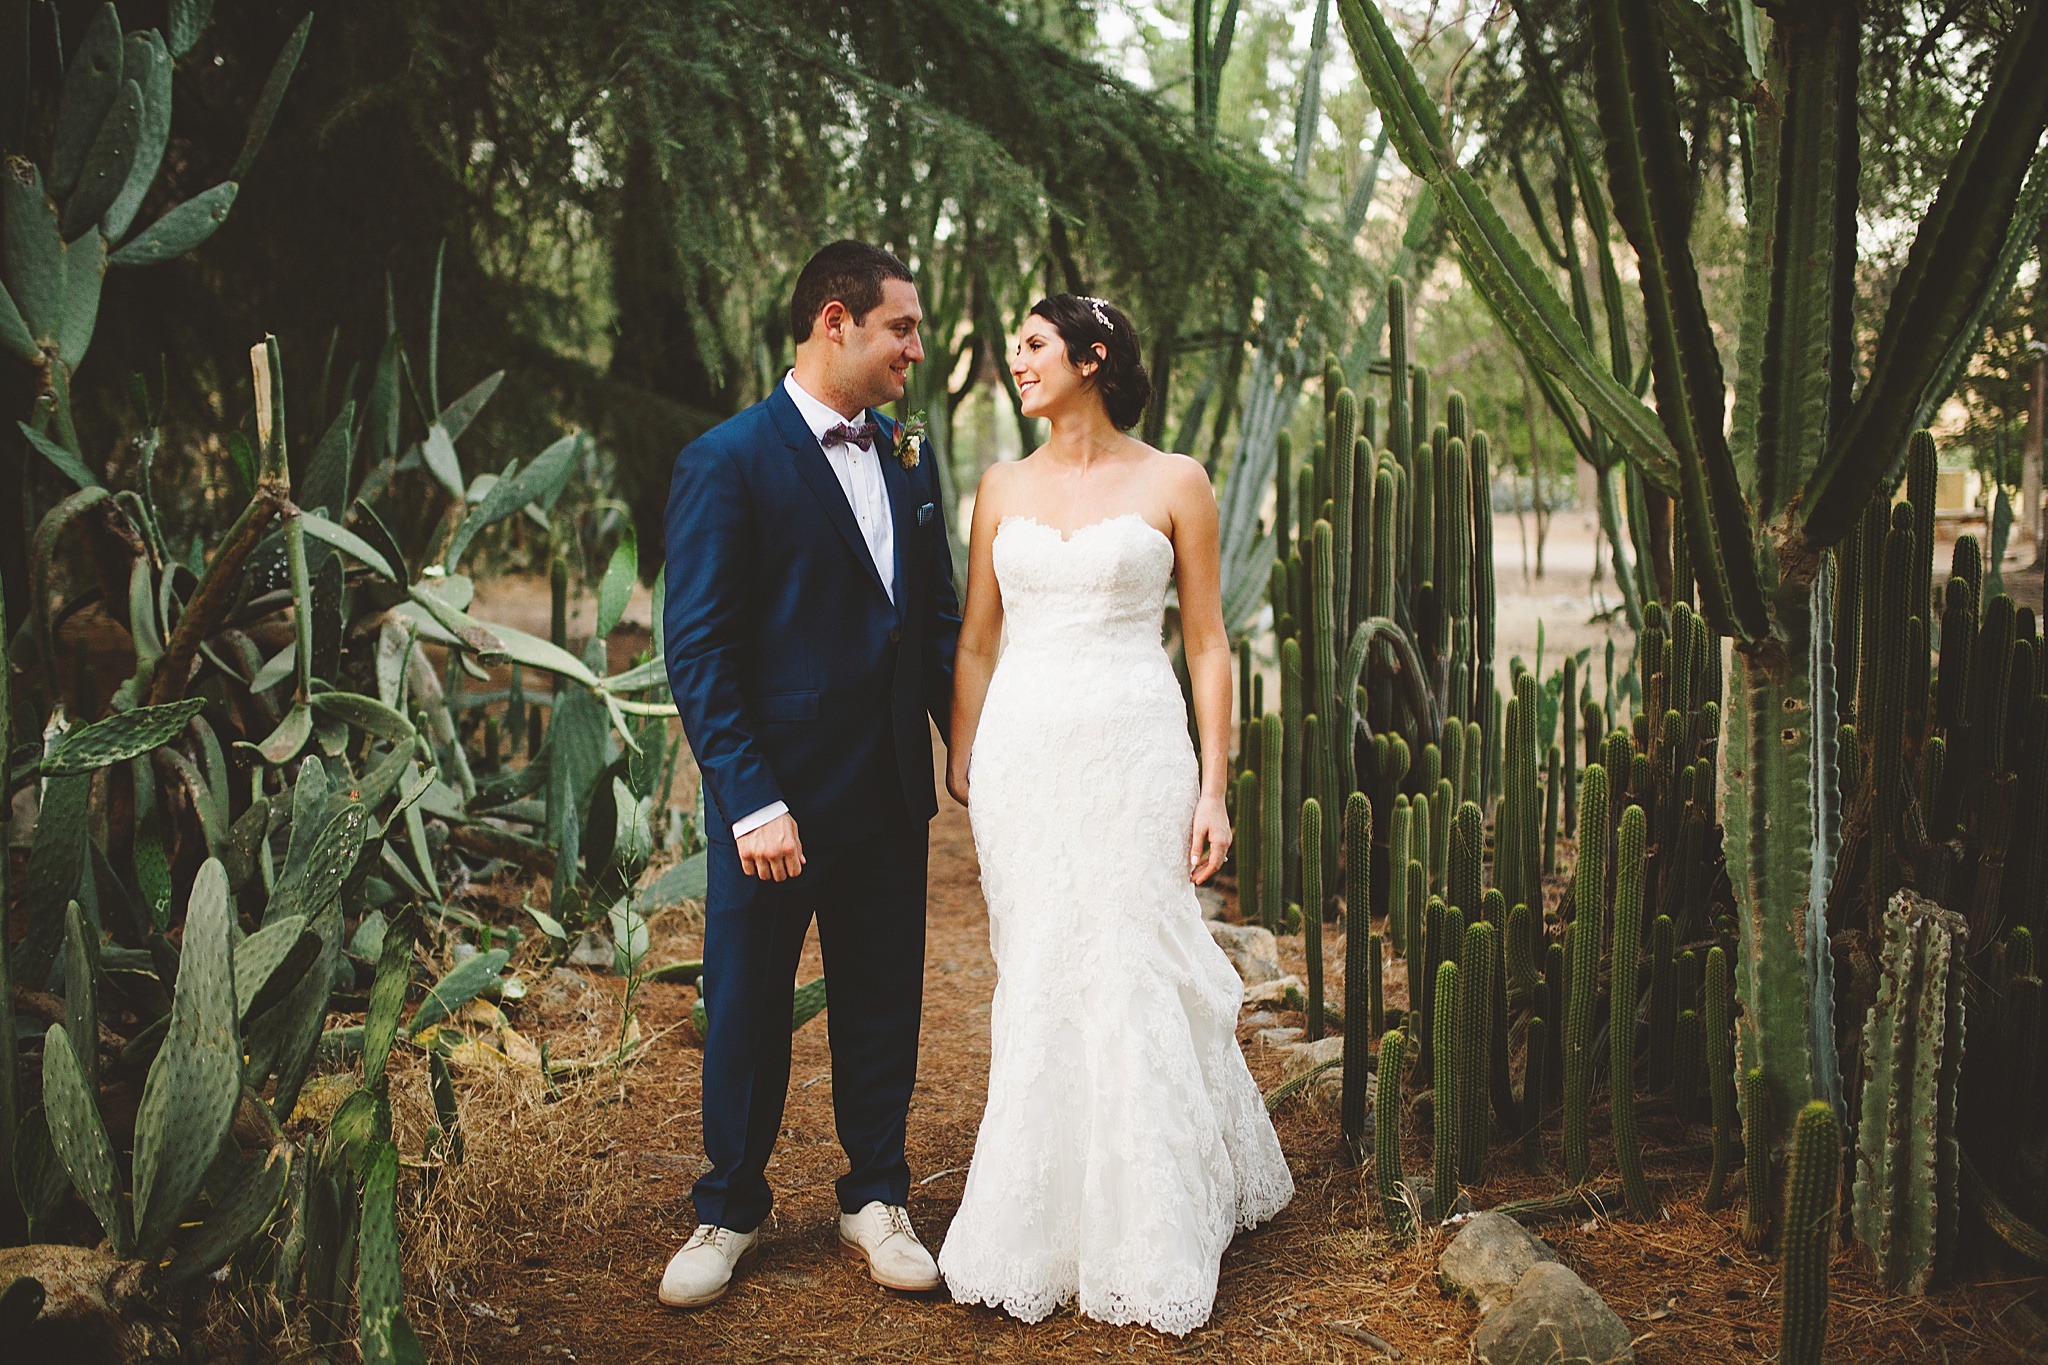 southern california outdoor wedding pictures with cactus